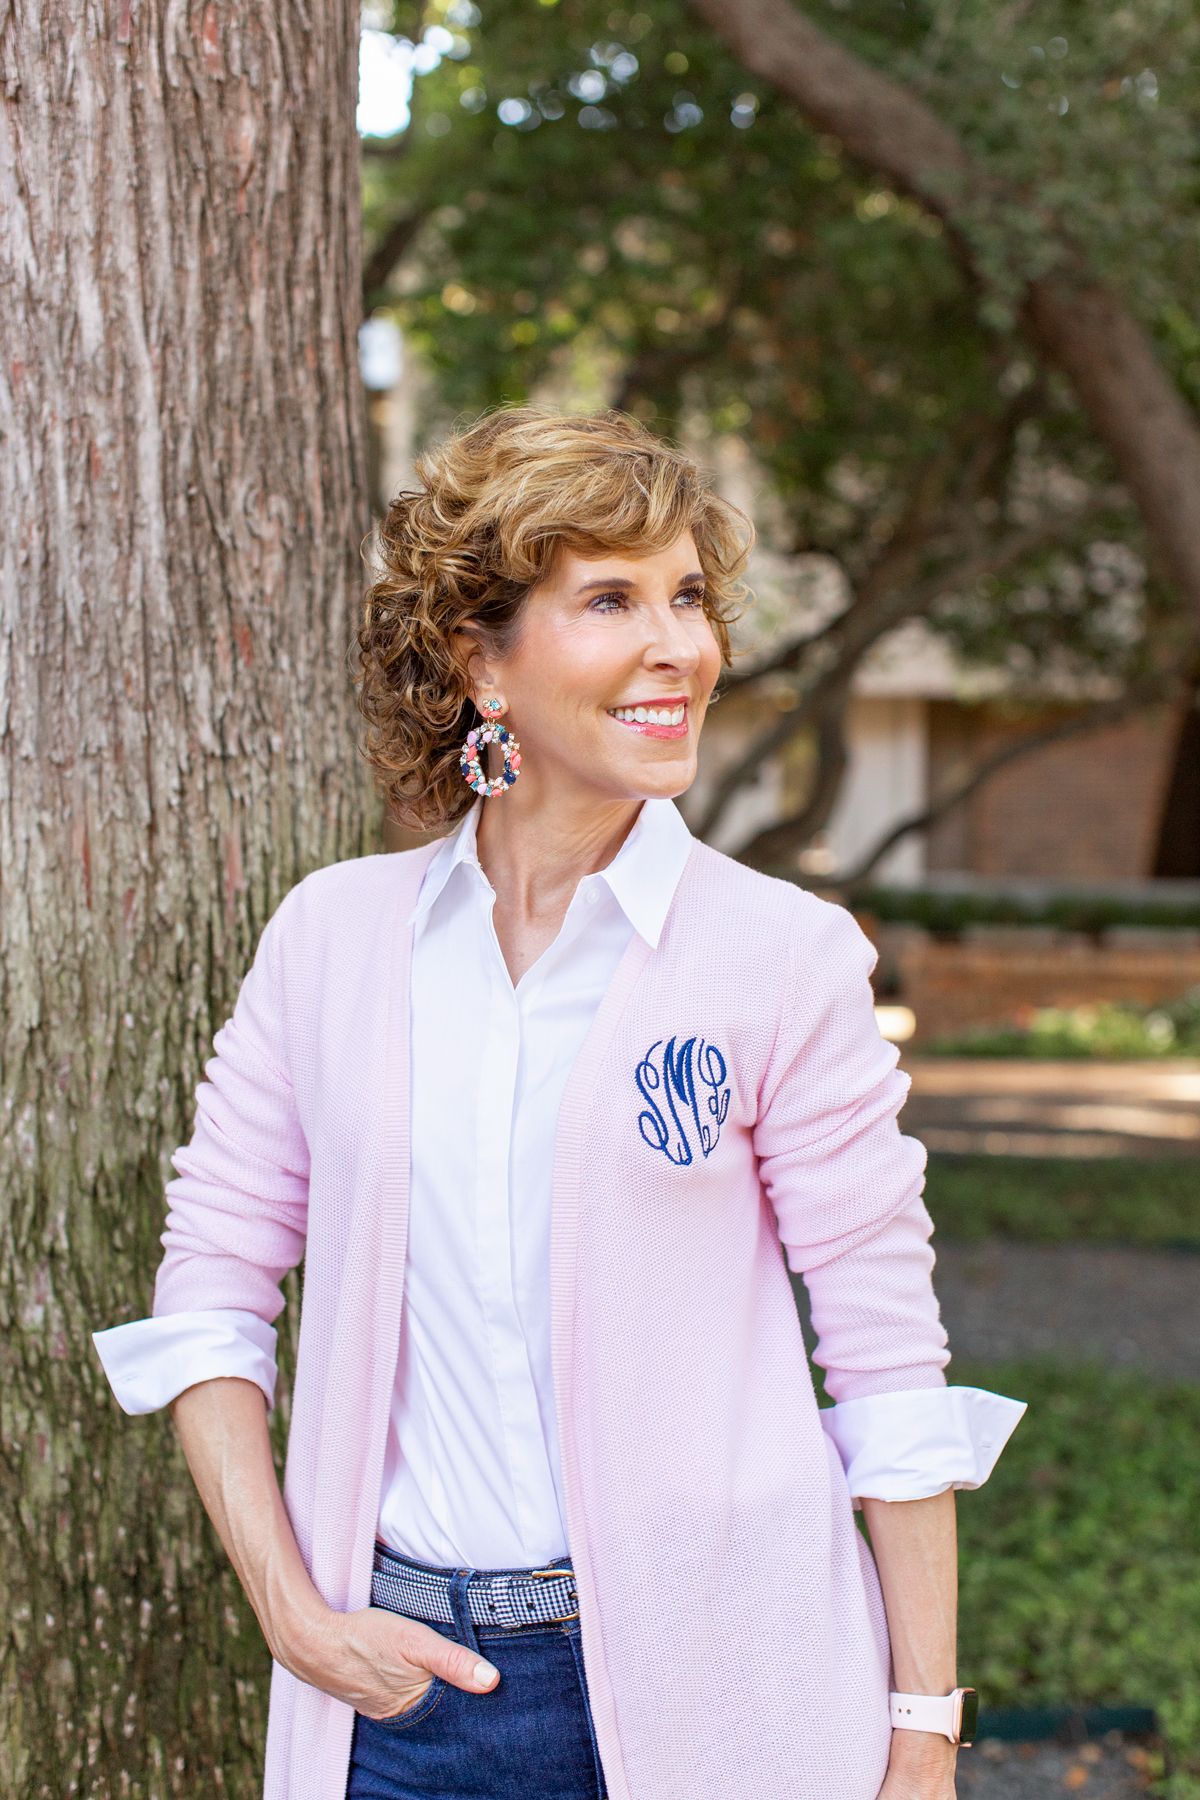 woman in pink cardigan standing next to a tree trunk looking to the side